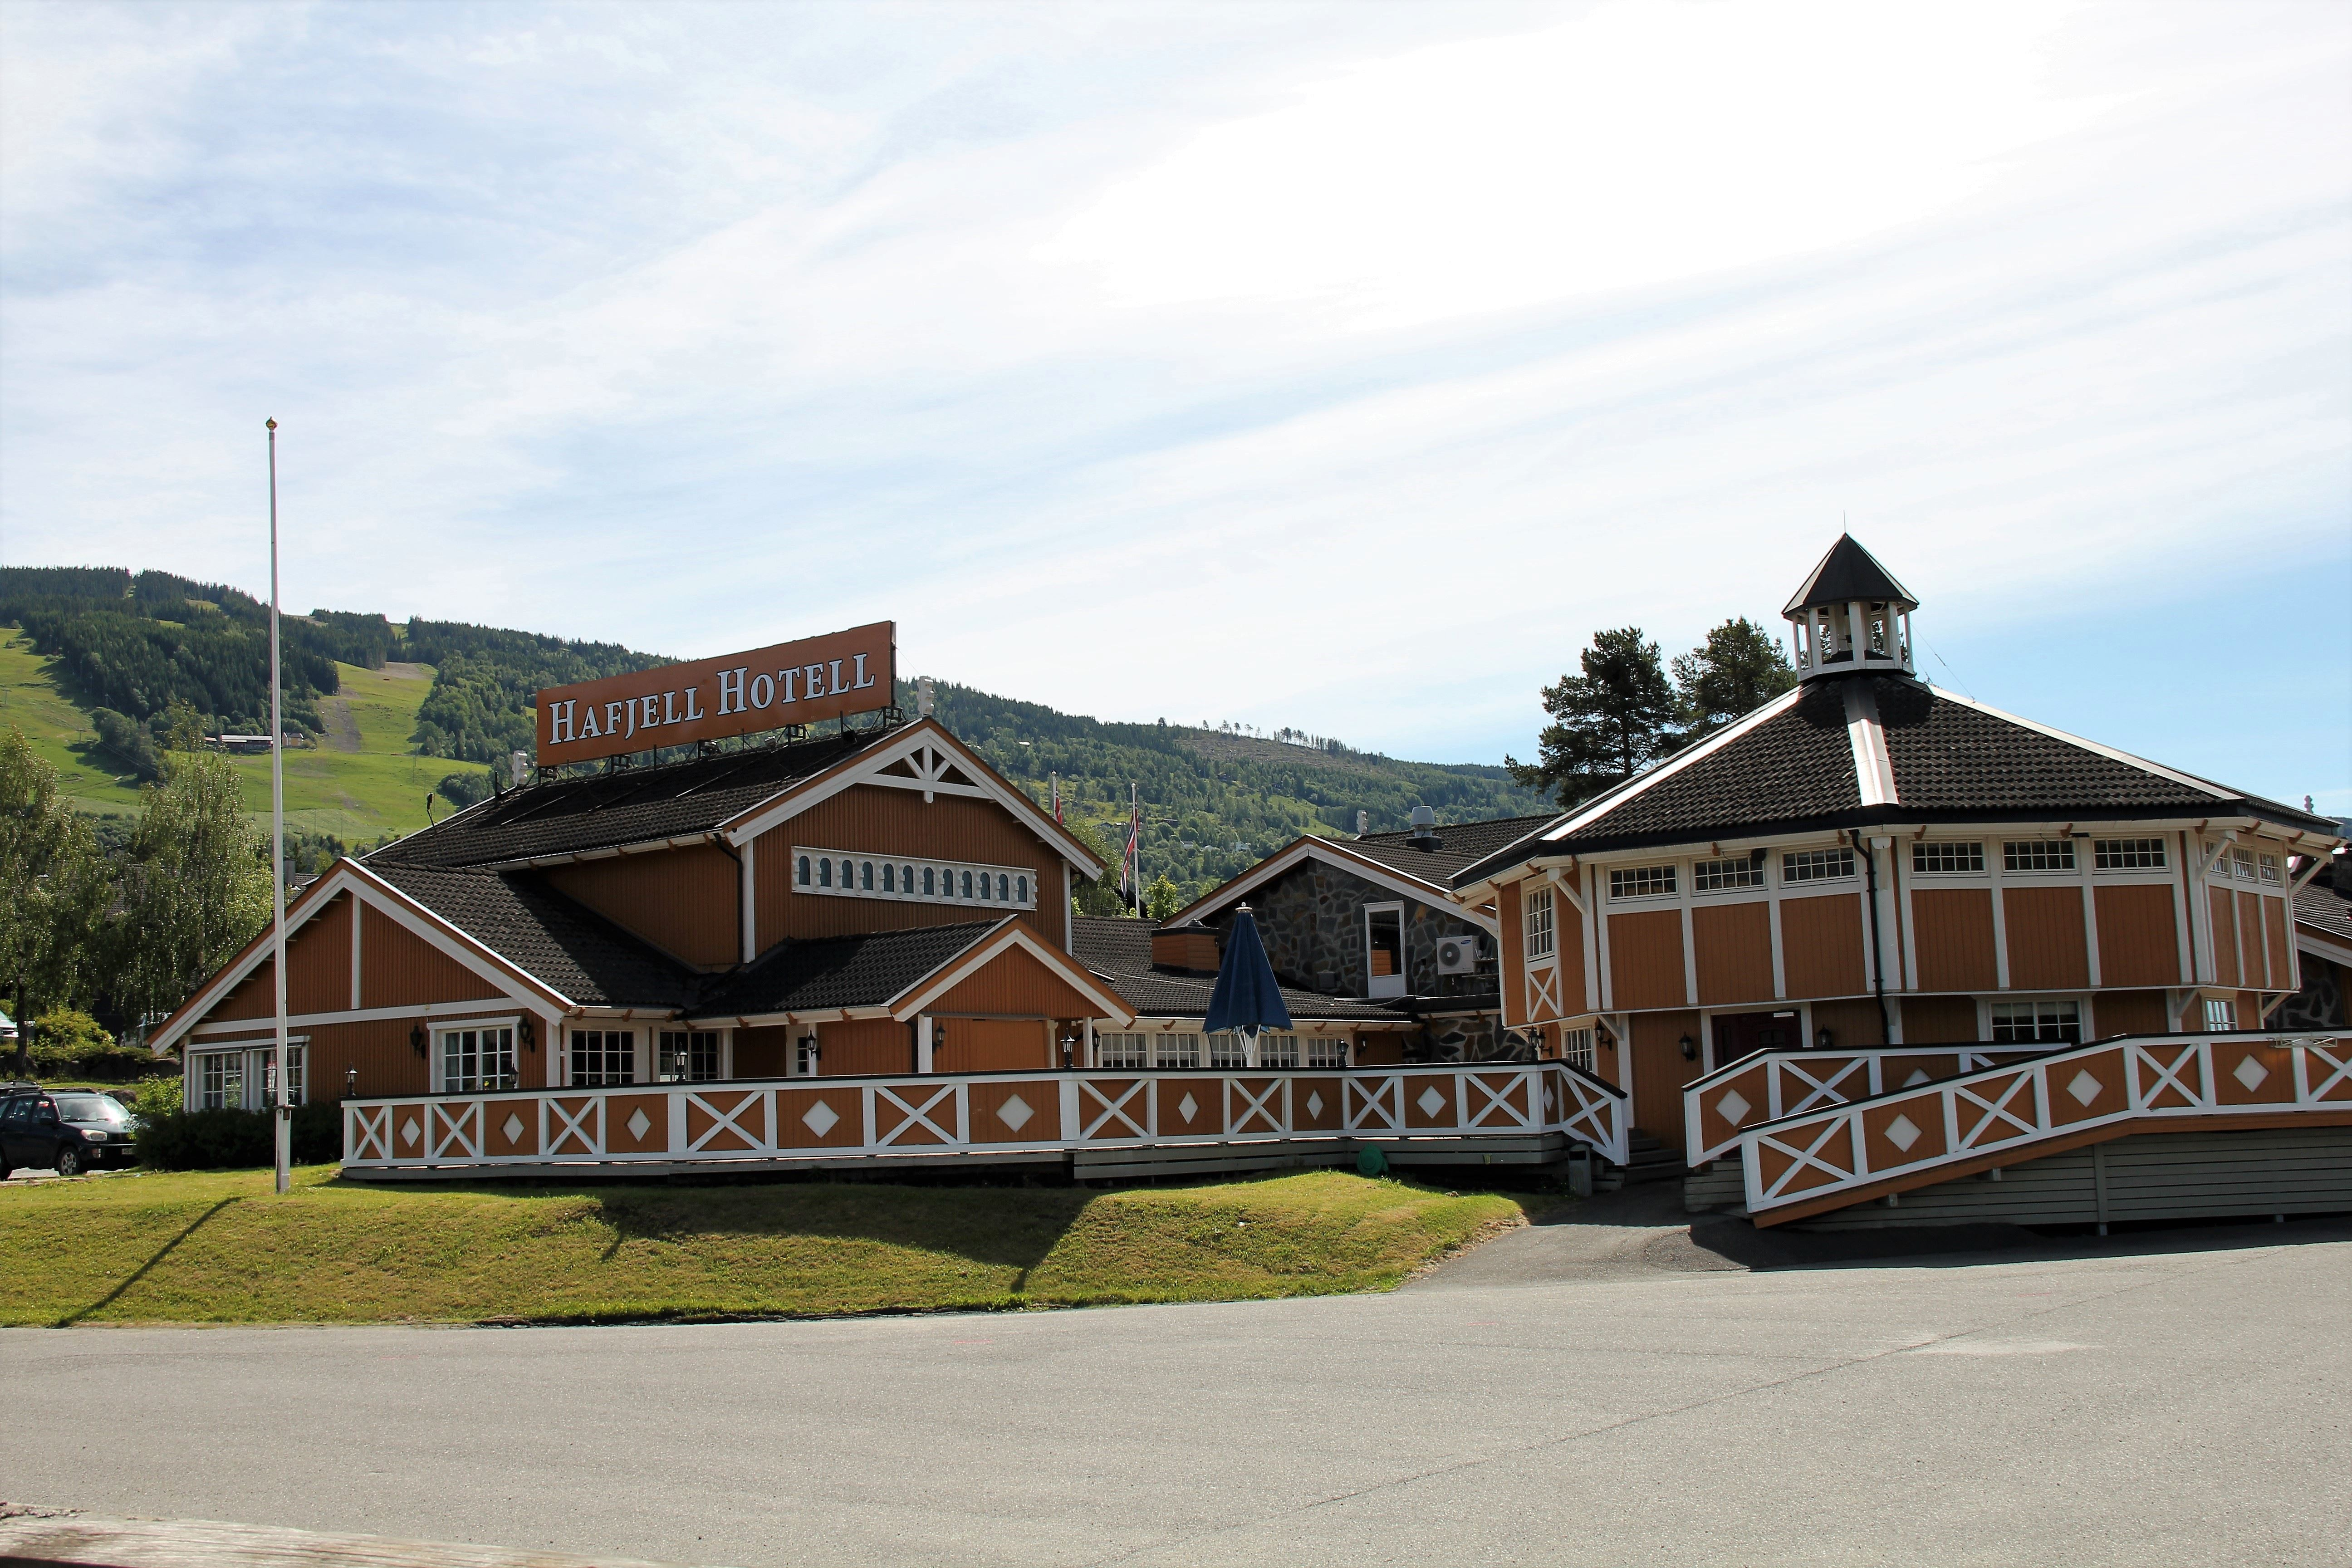 Hafjell Hotel certified as an Eco-Lighthouse